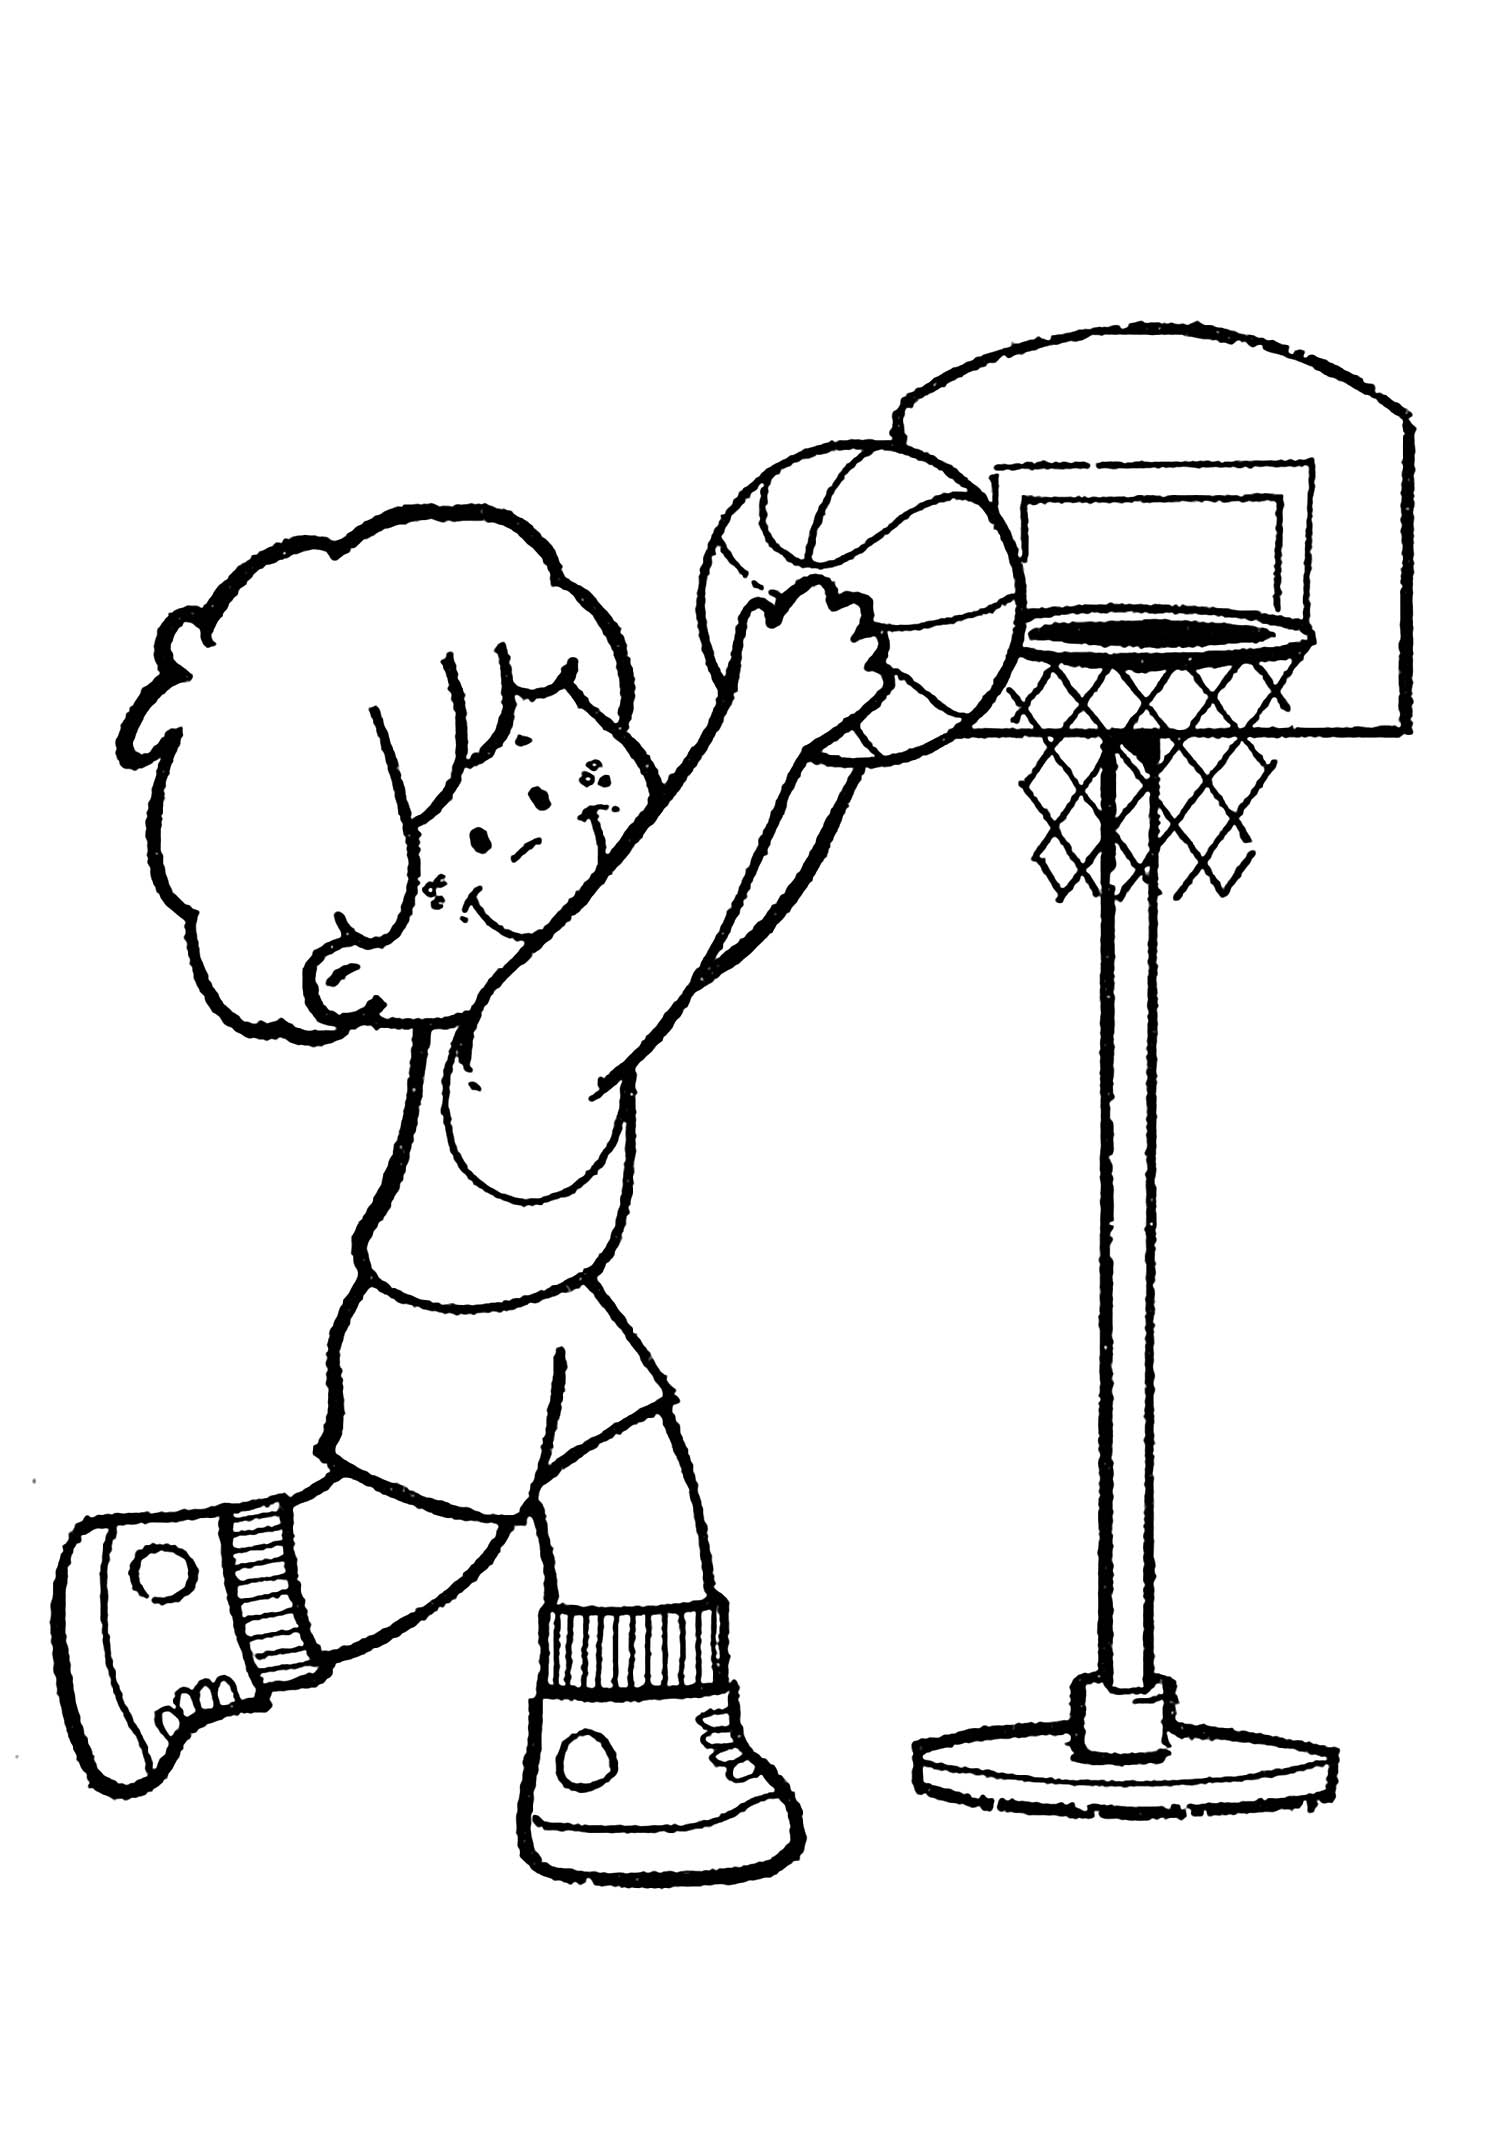 coloring pictures basketball basketball free to color for kids basketball kids pictures basketball coloring